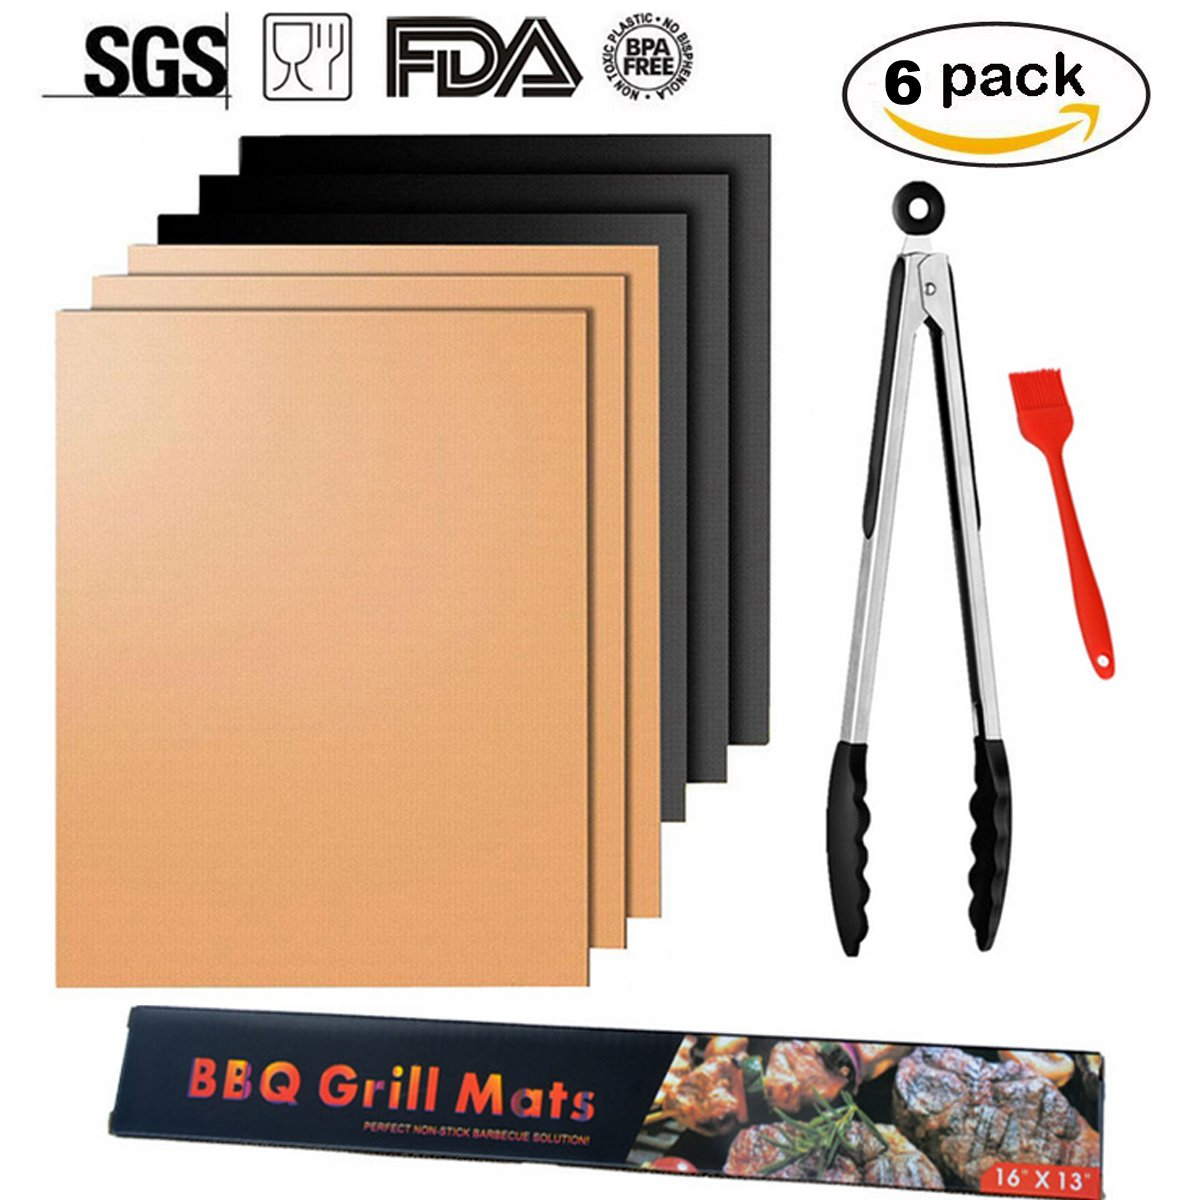 SMART HOME CHEF Copper Grill Mat Set of 6 - Non-stick BBQ Grill & Baking Mats - FDA Approved, PFOA Free, Golden Grill Mats & Bake Mats Reusable & Easy to Clean - grill mat serve kitchen & Outdoor (6)